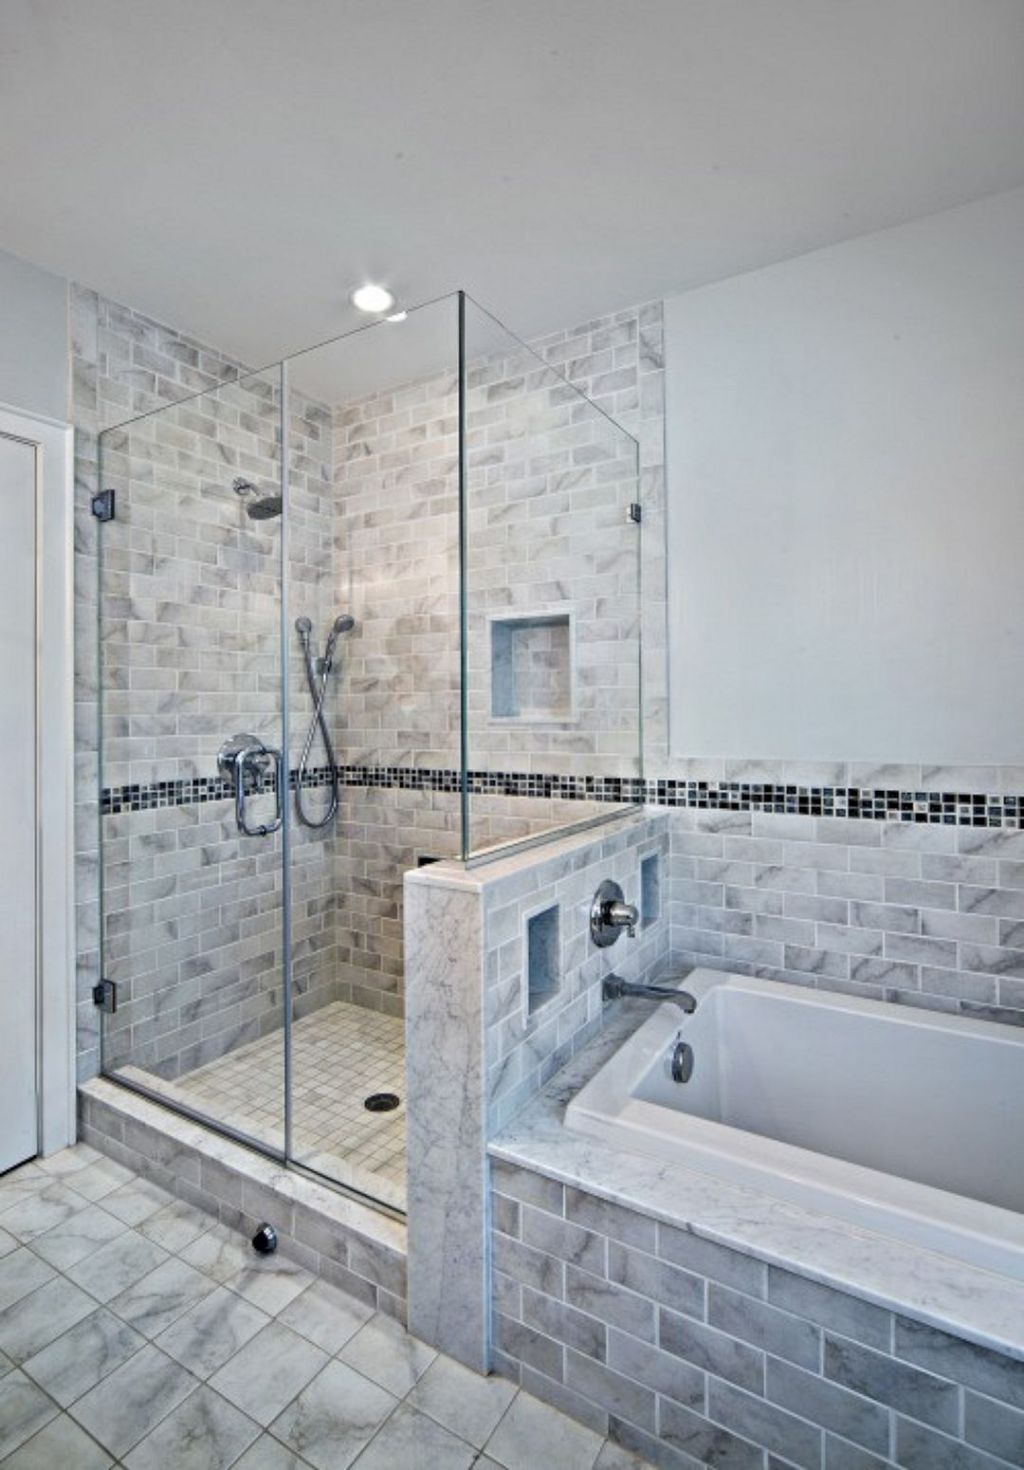 The Best Diy Master Bathroom Ideas Remodel On A Budget No 07 Bathrooms Remodel Master Bathroom Modern Bathroom Tile